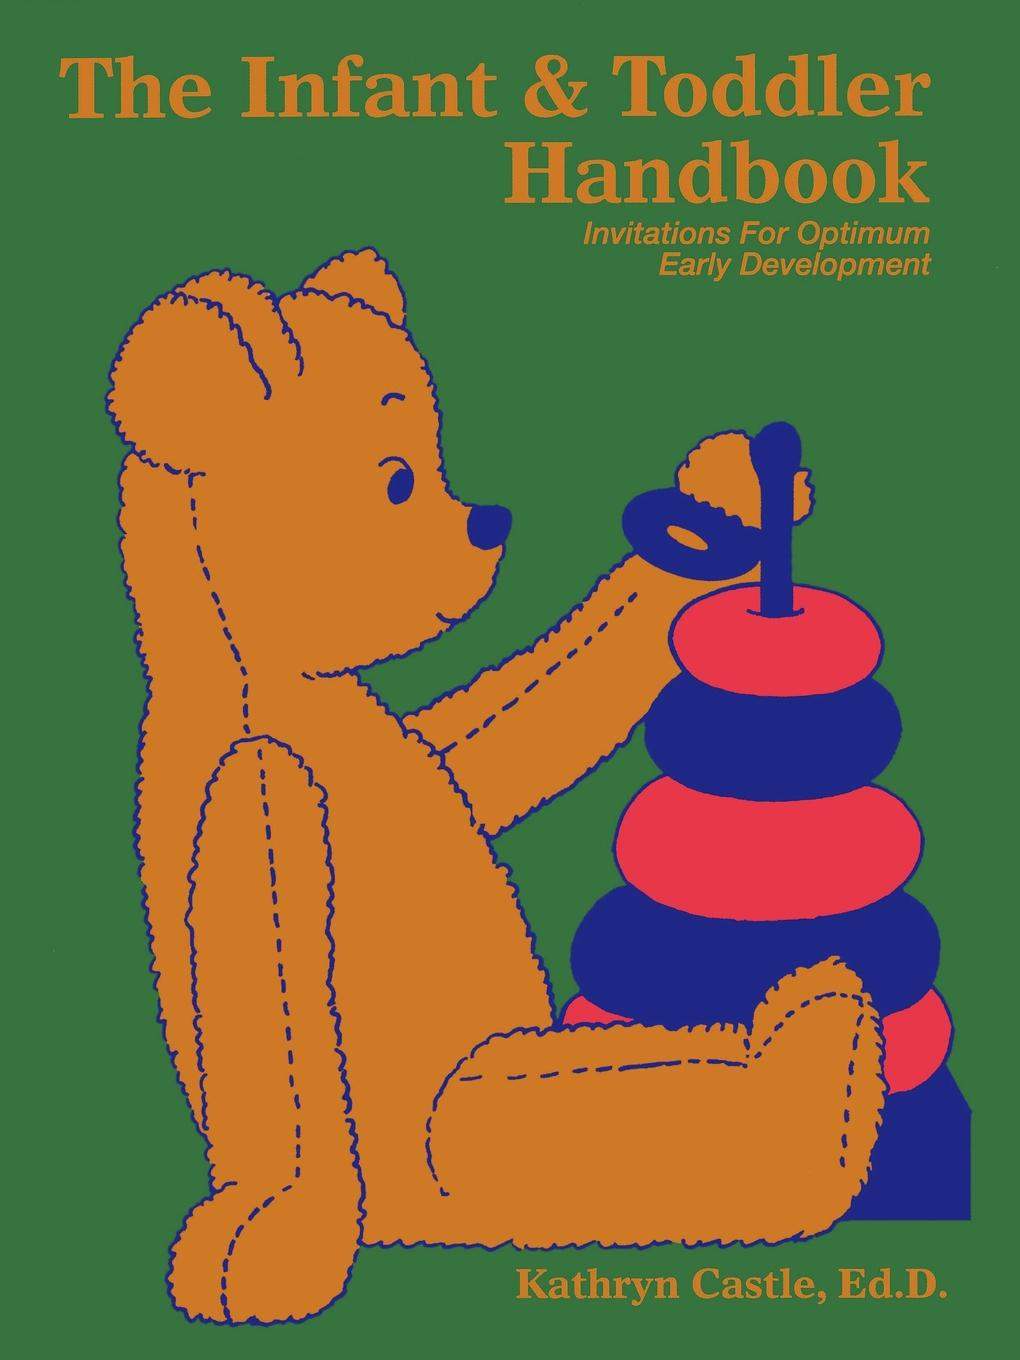 The Infant & Toddler Handbook